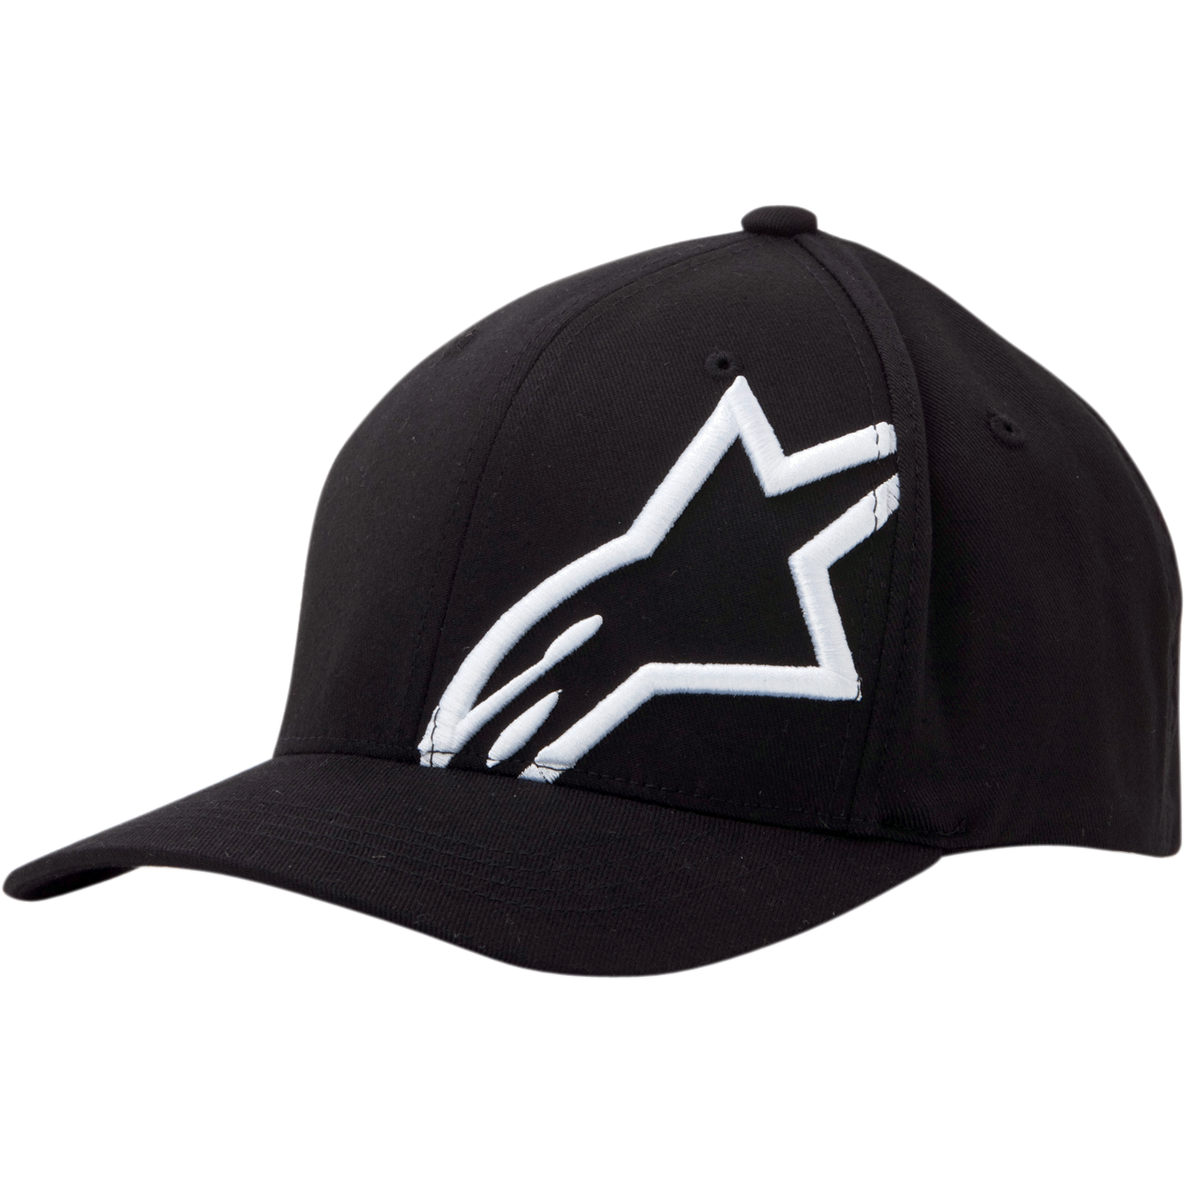 Corp Shift 2 Curved Bill Hat